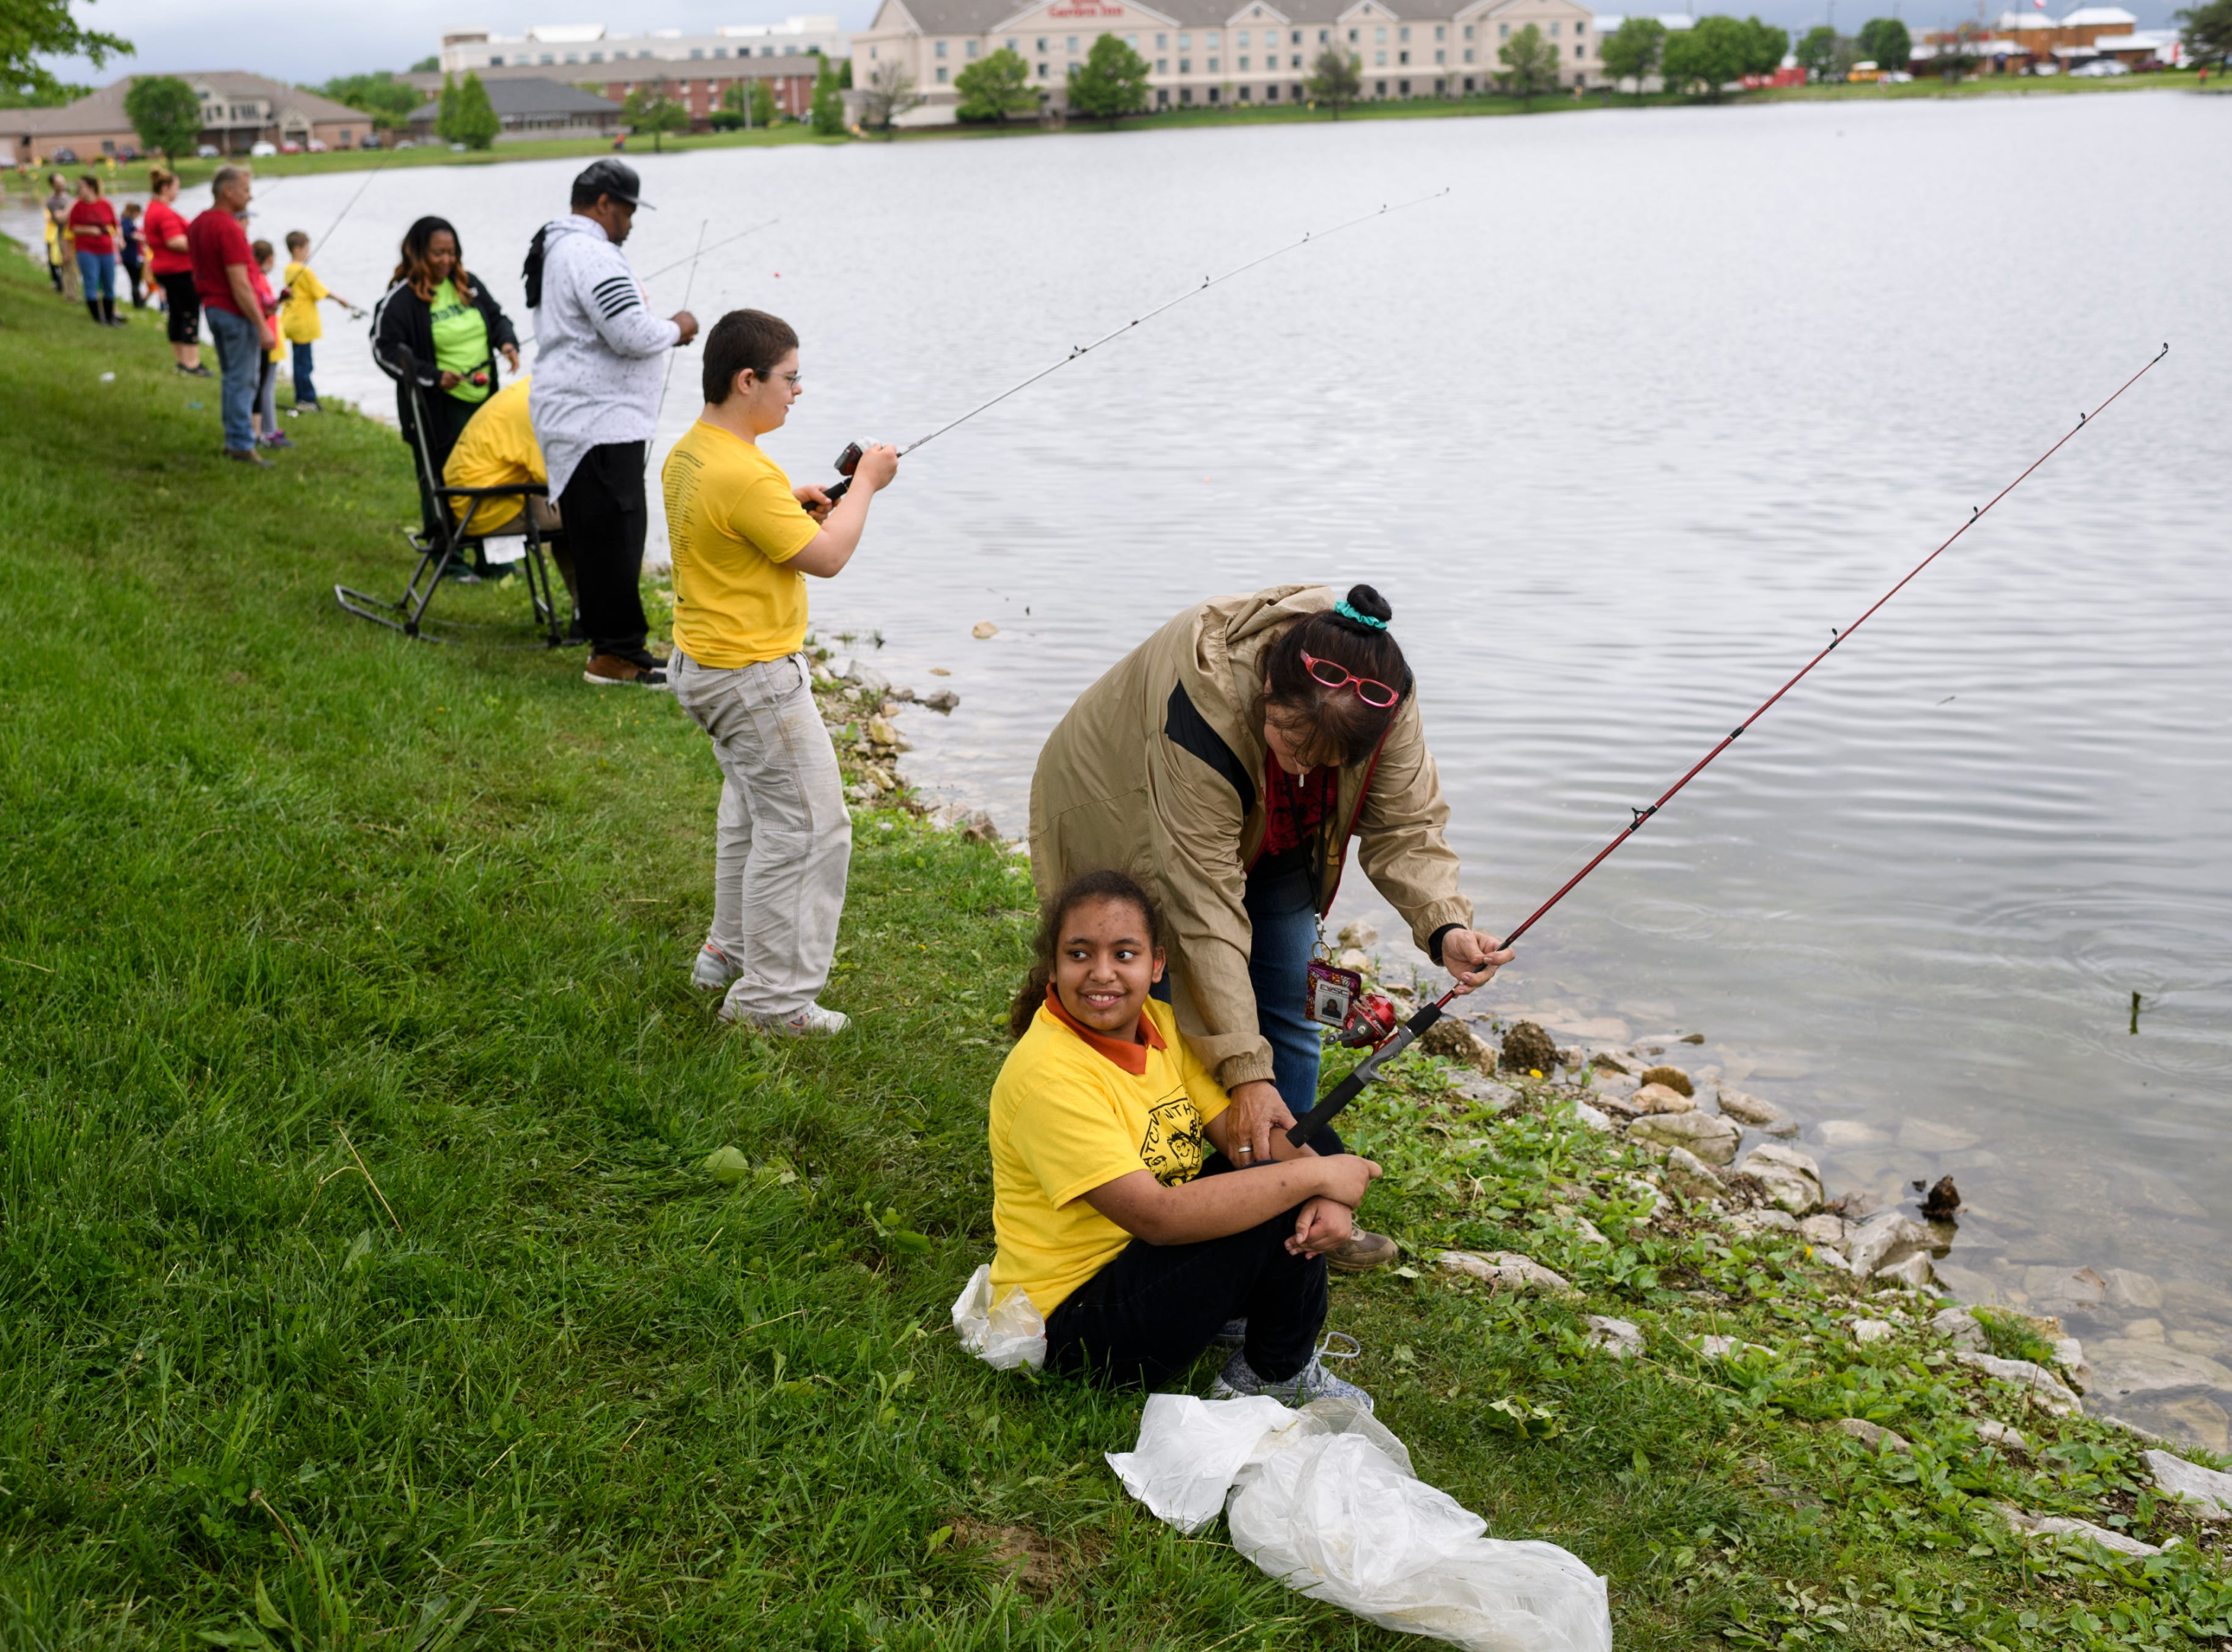 """Charlotte Skelton, a special education aide, helps North Junior High student Angel Keeper cast her line as they fish with others during the 12th annual """"Catchin' with Capin"""" event at Eagle Lake in Evansville, Ind., Friday, May 3, 2019."""